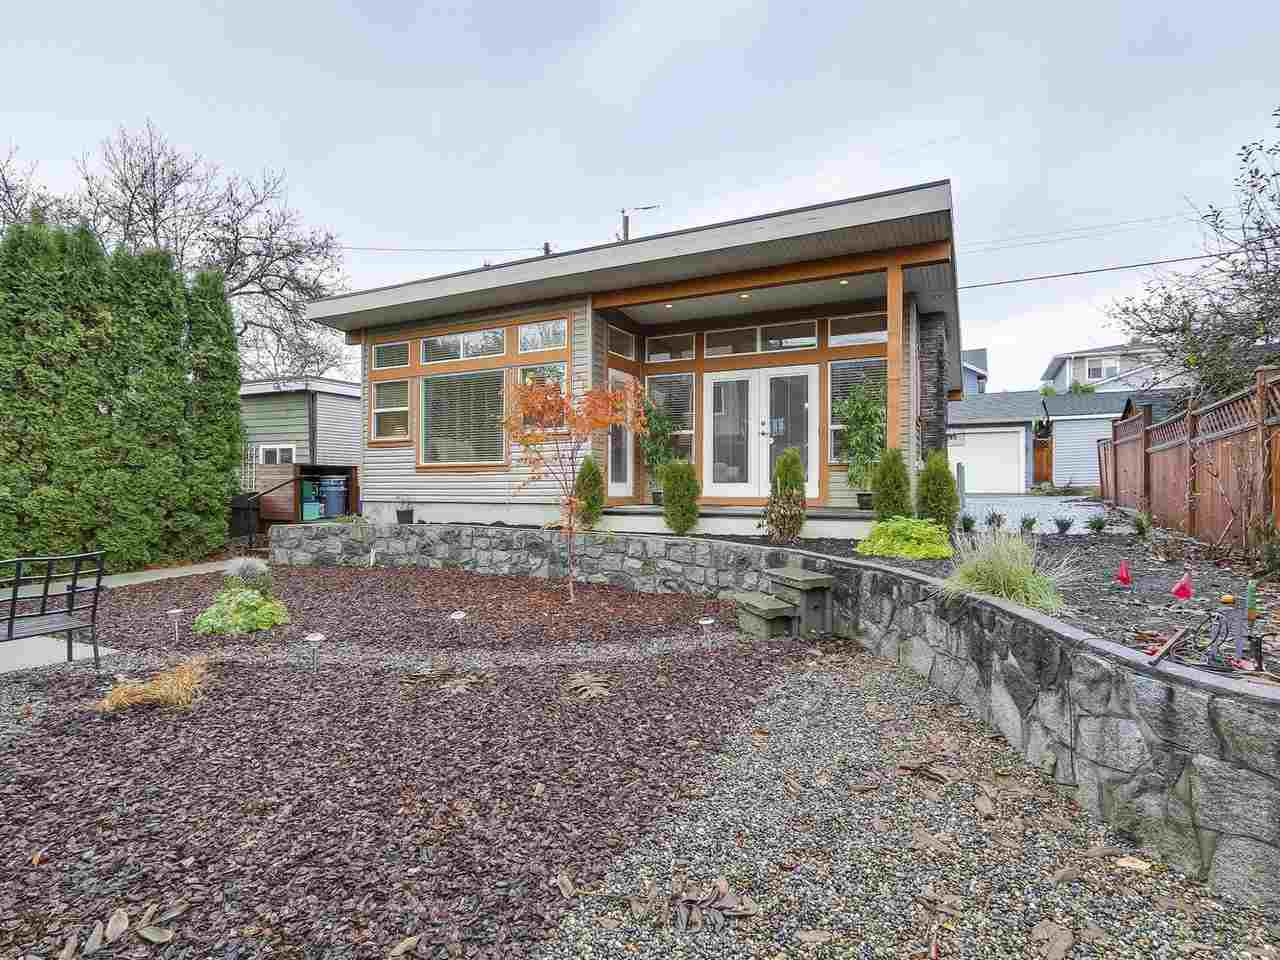 Photo 14: Photos: 658 E 4TH STREET in North Vancouver: Queensbury House for sale : MLS®# R2222993